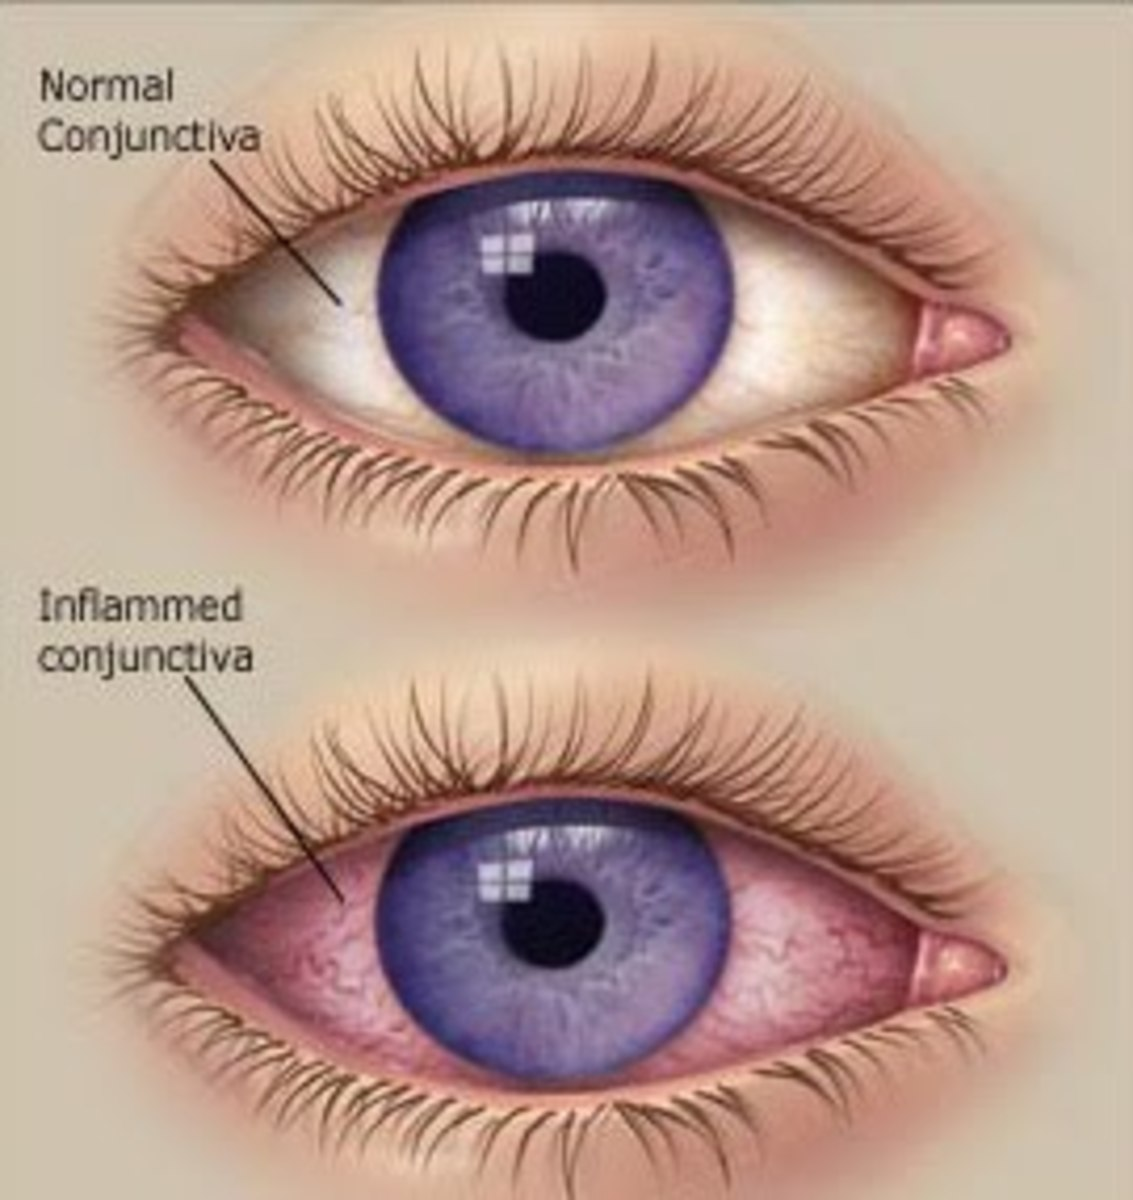 Top eye- Normal clear eye Bottom eye- Sore eye , reddish